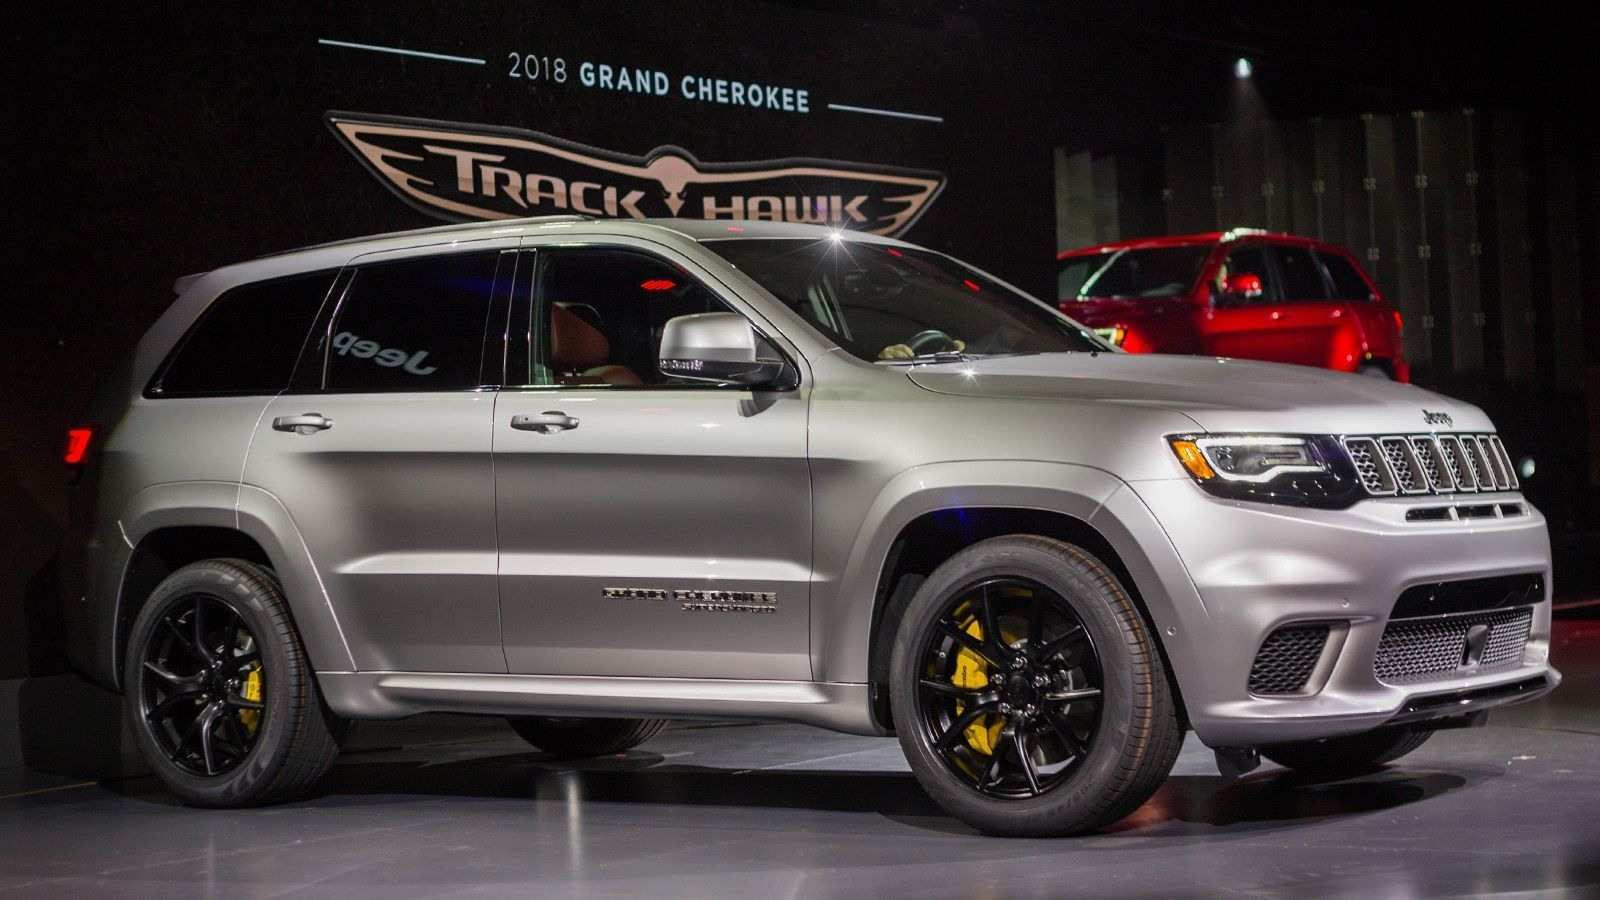 71 All New 2019 Grand Cherokee Srt Hellcat Redesign